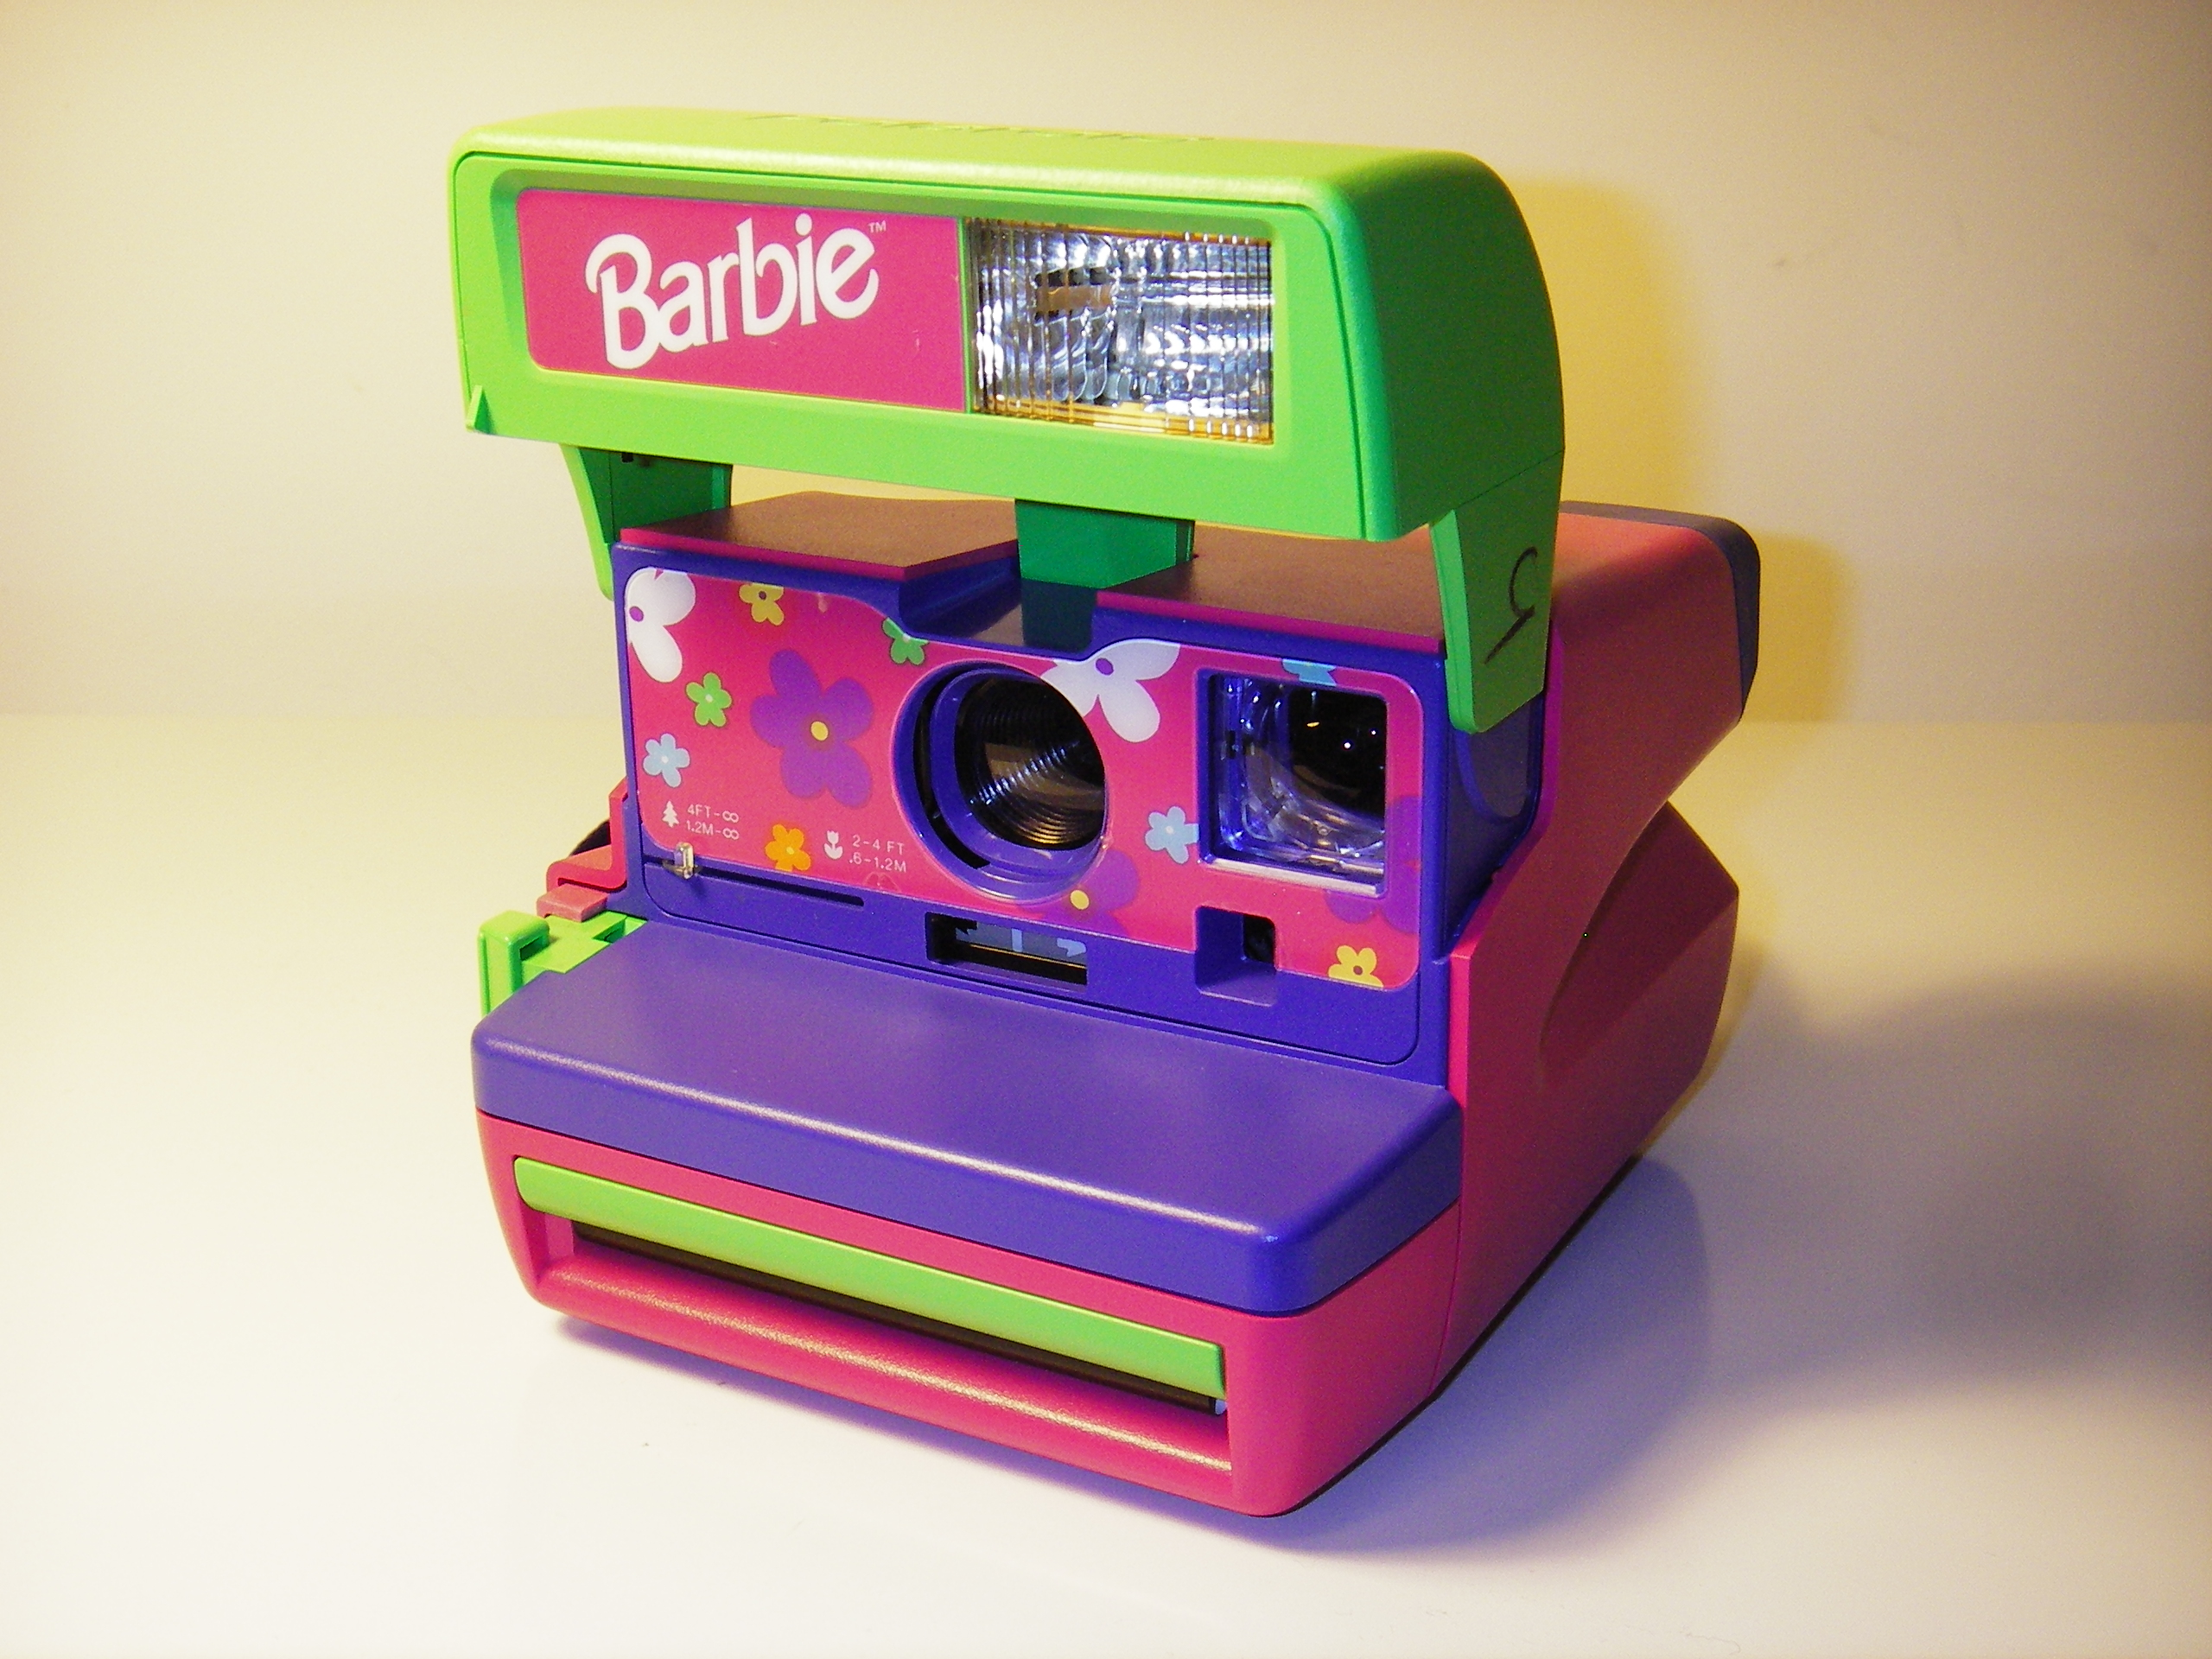 File:Polaroid Barbie Pink Instant 600 Film Camera.jpg - Wikimedia ...